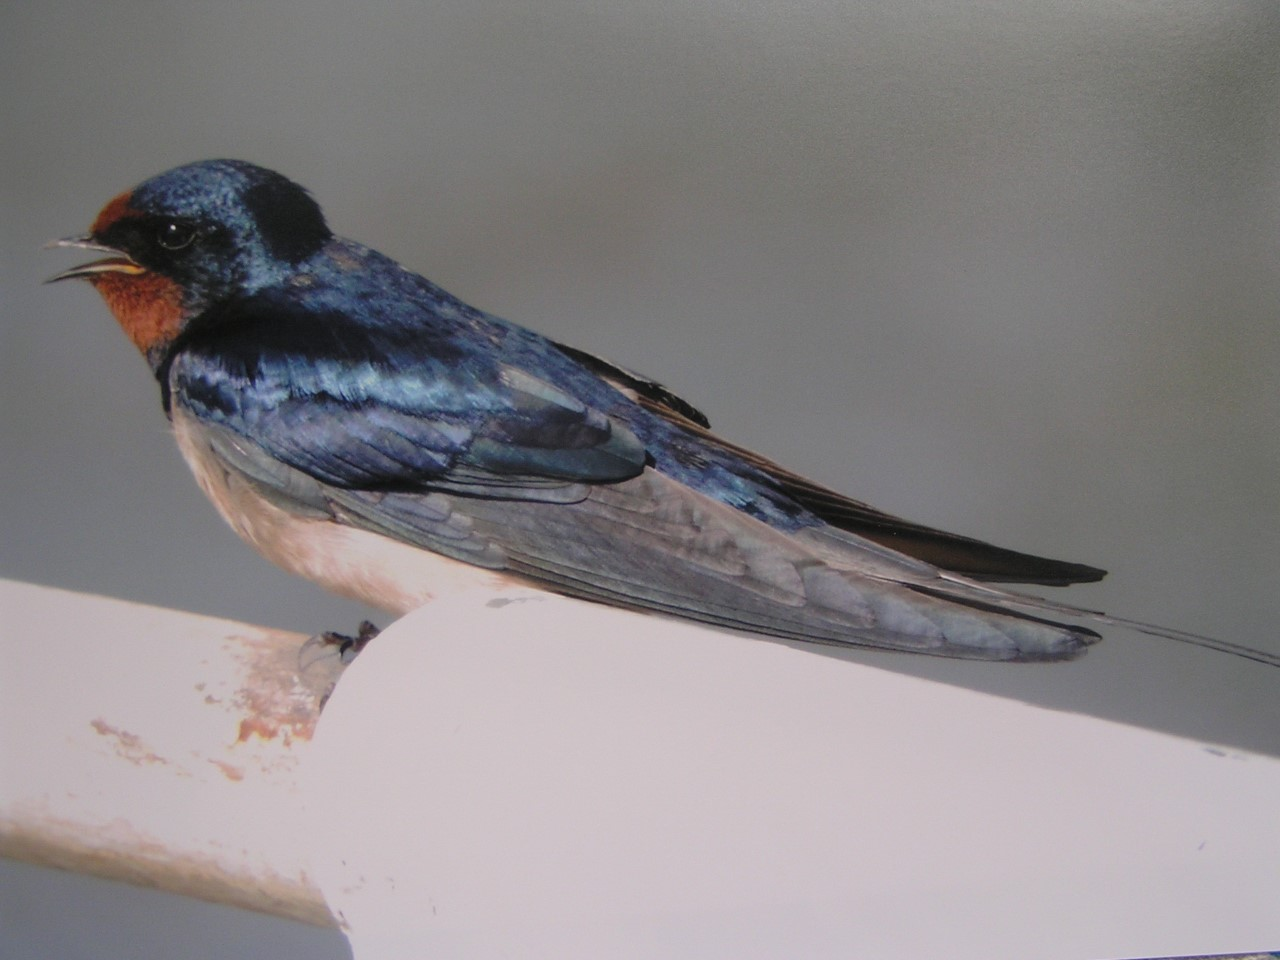 Britain's blue bird, the swallow